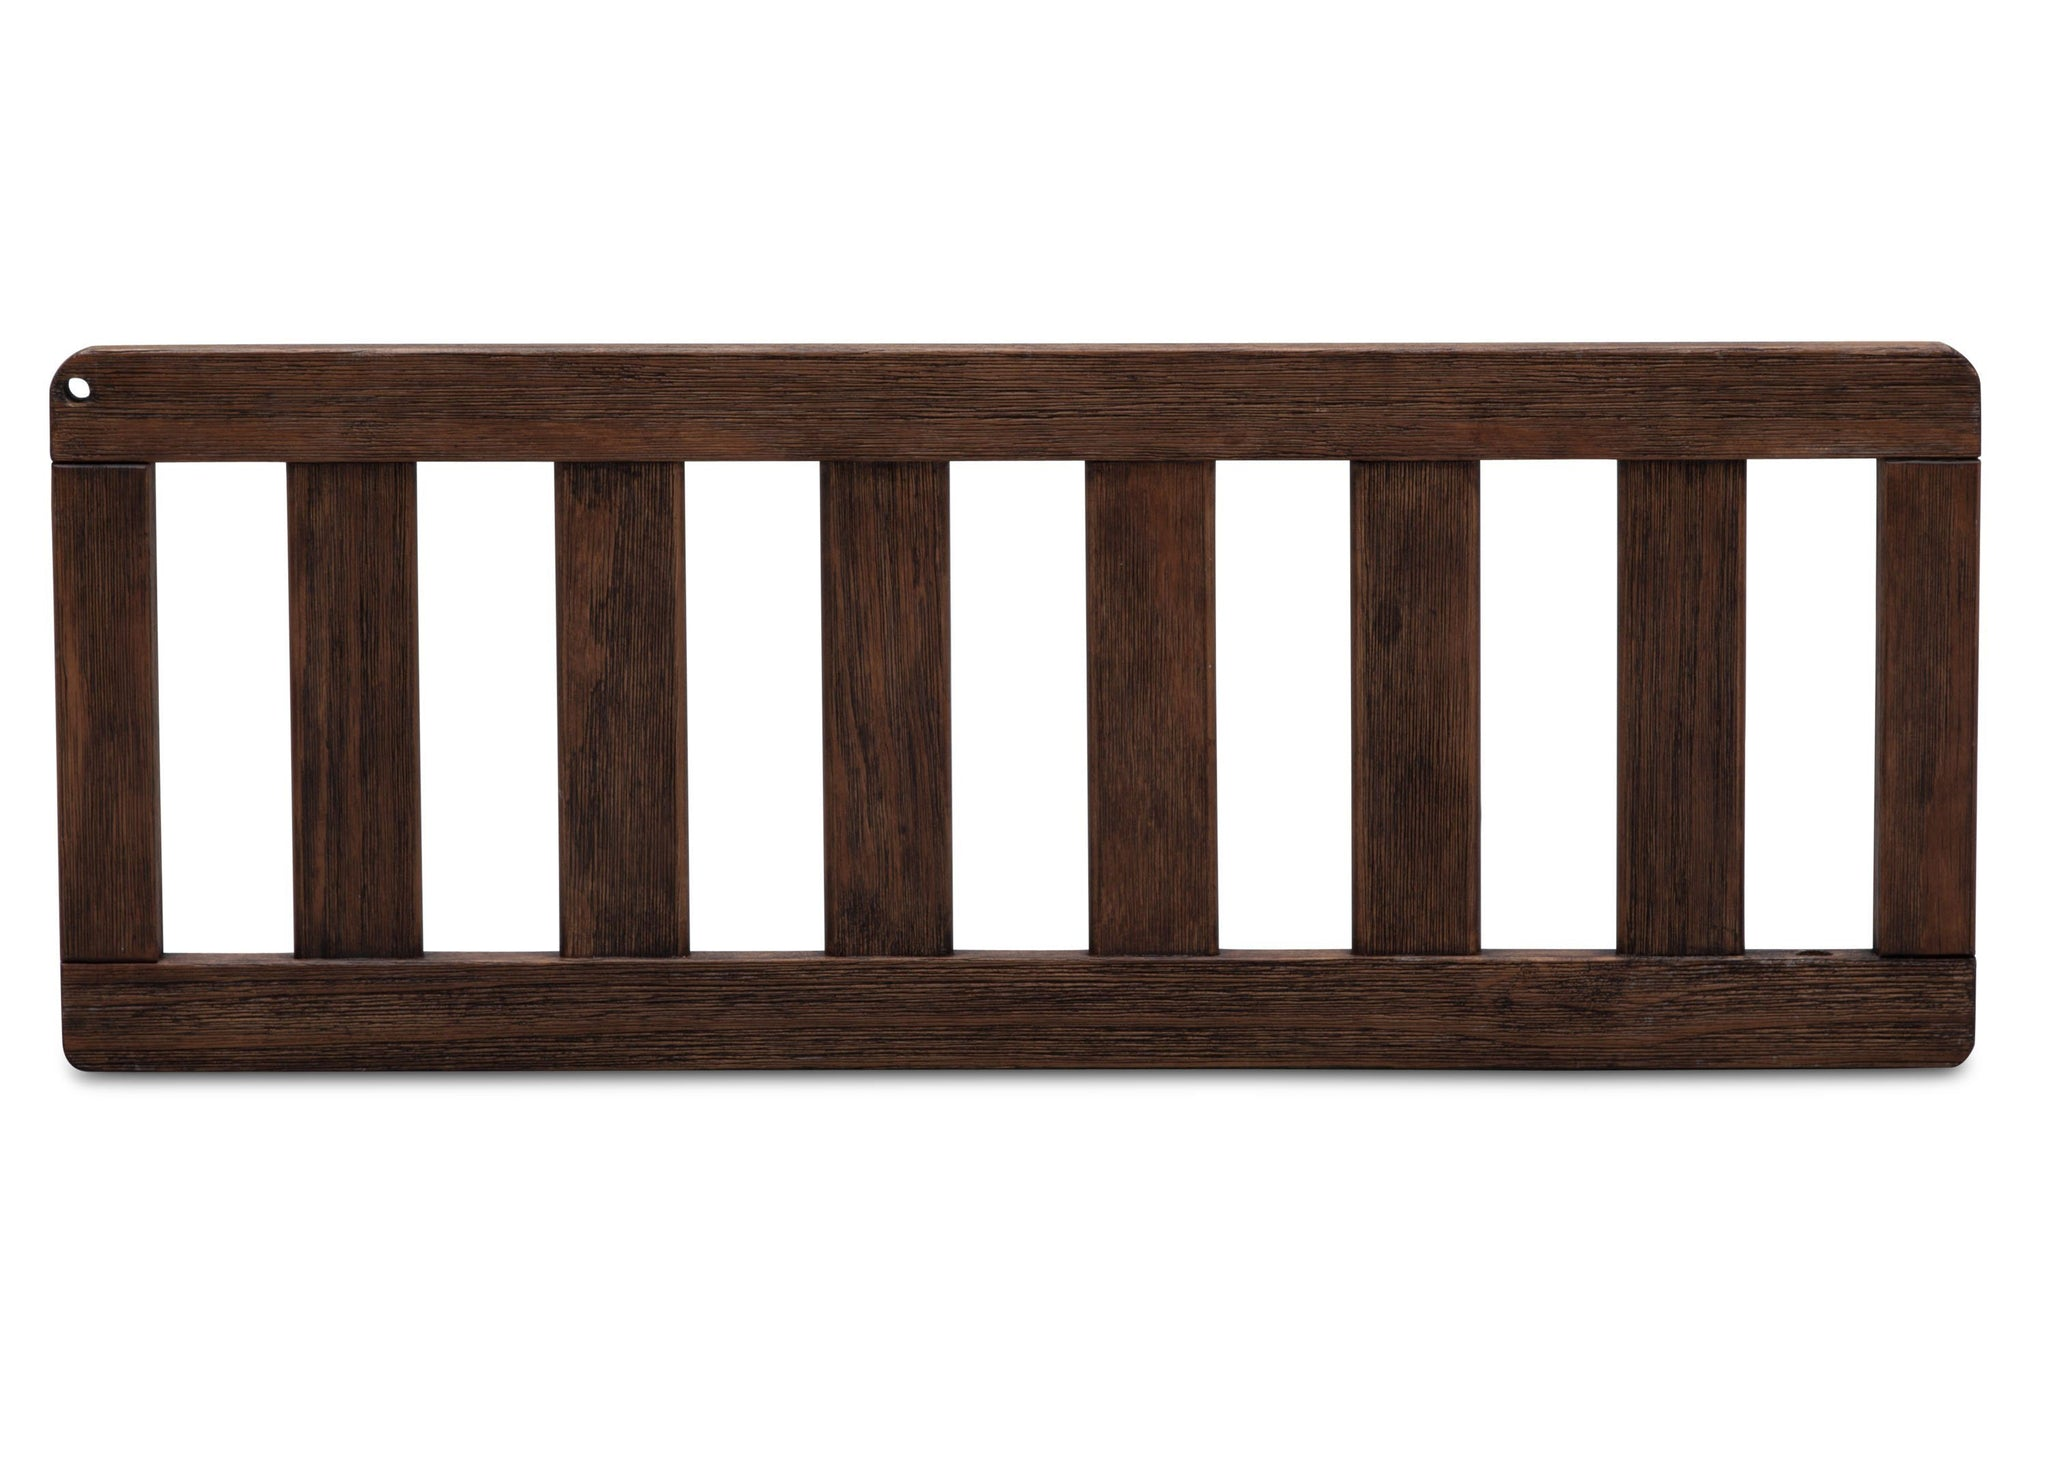 Serta Daybed/Toddler Guardrail Kit (703725) Rustic Oak (229ST) Front View c2c